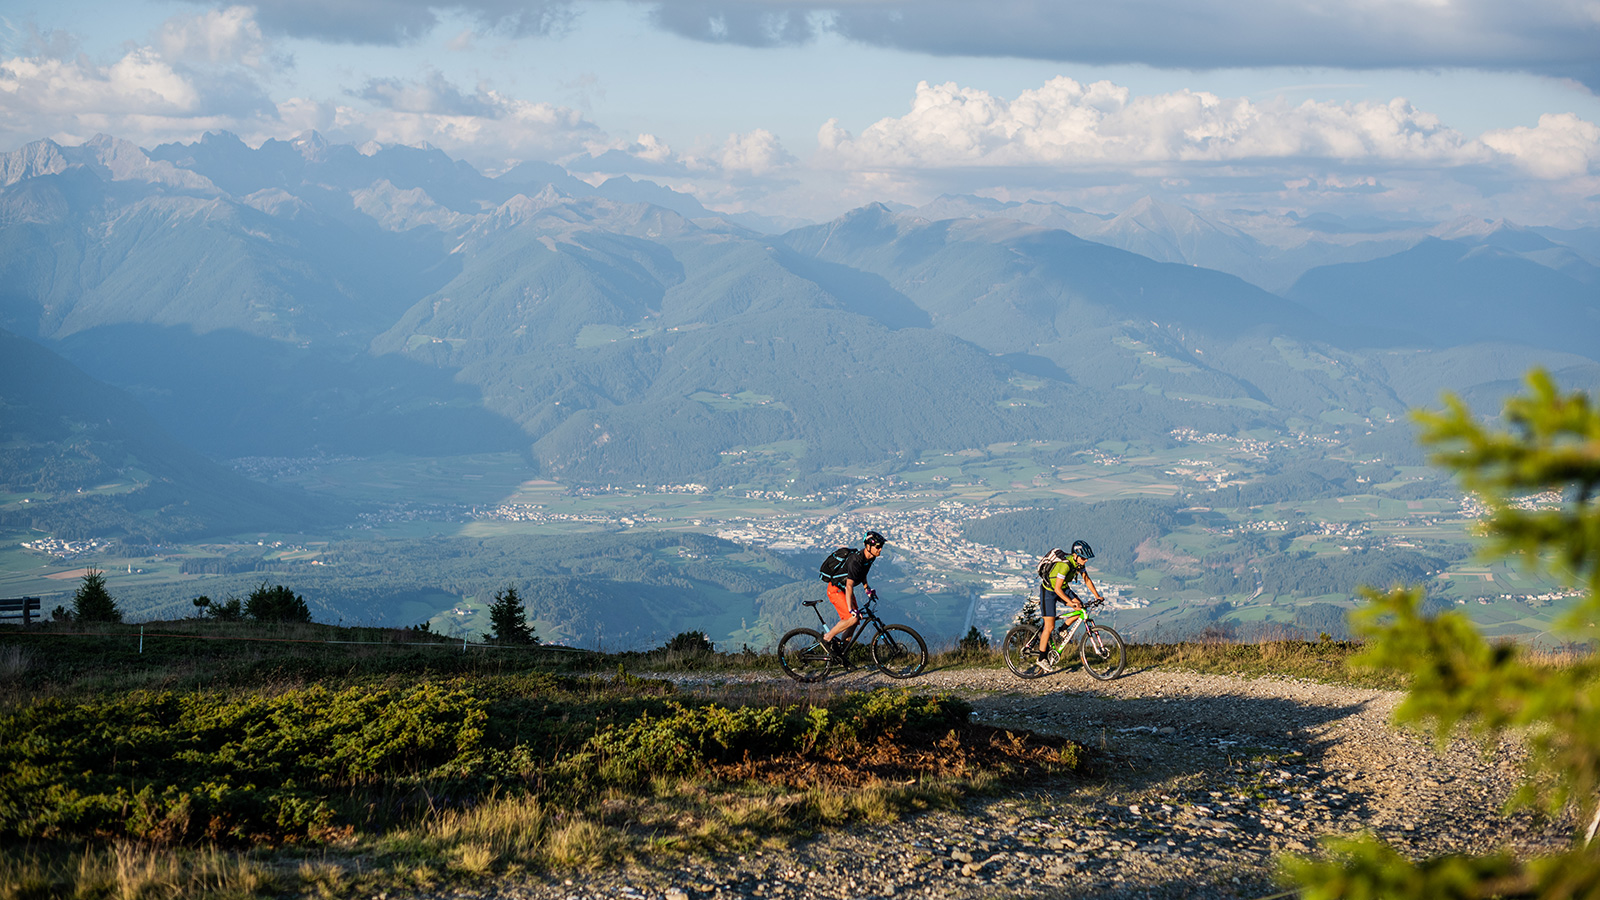 Gite in mountain bike sul Plan de Corones